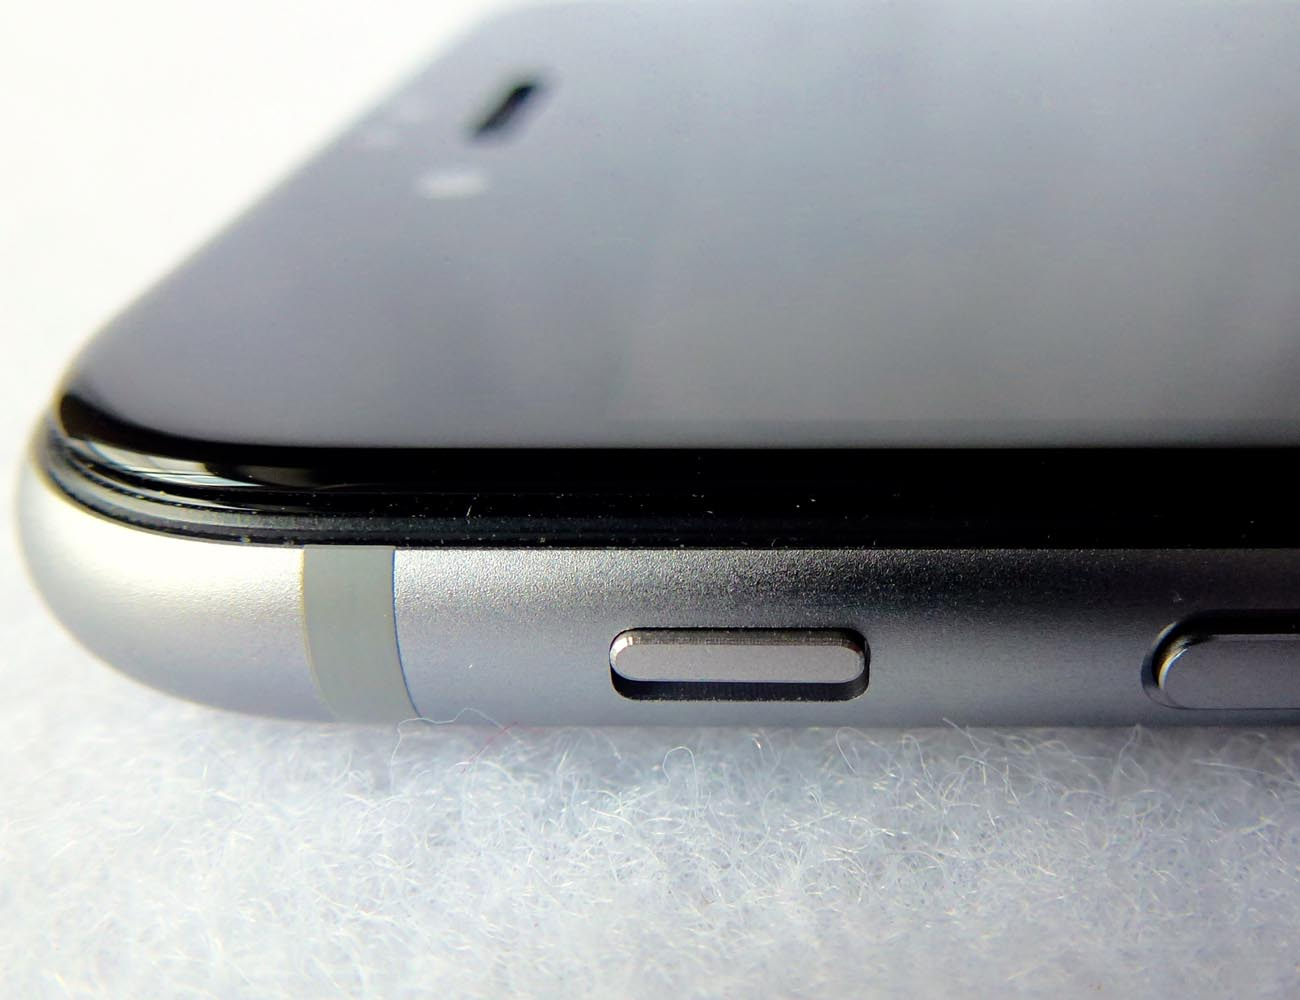 CINDER: The Holy Grail of iPhone 6/6s Glass Protection